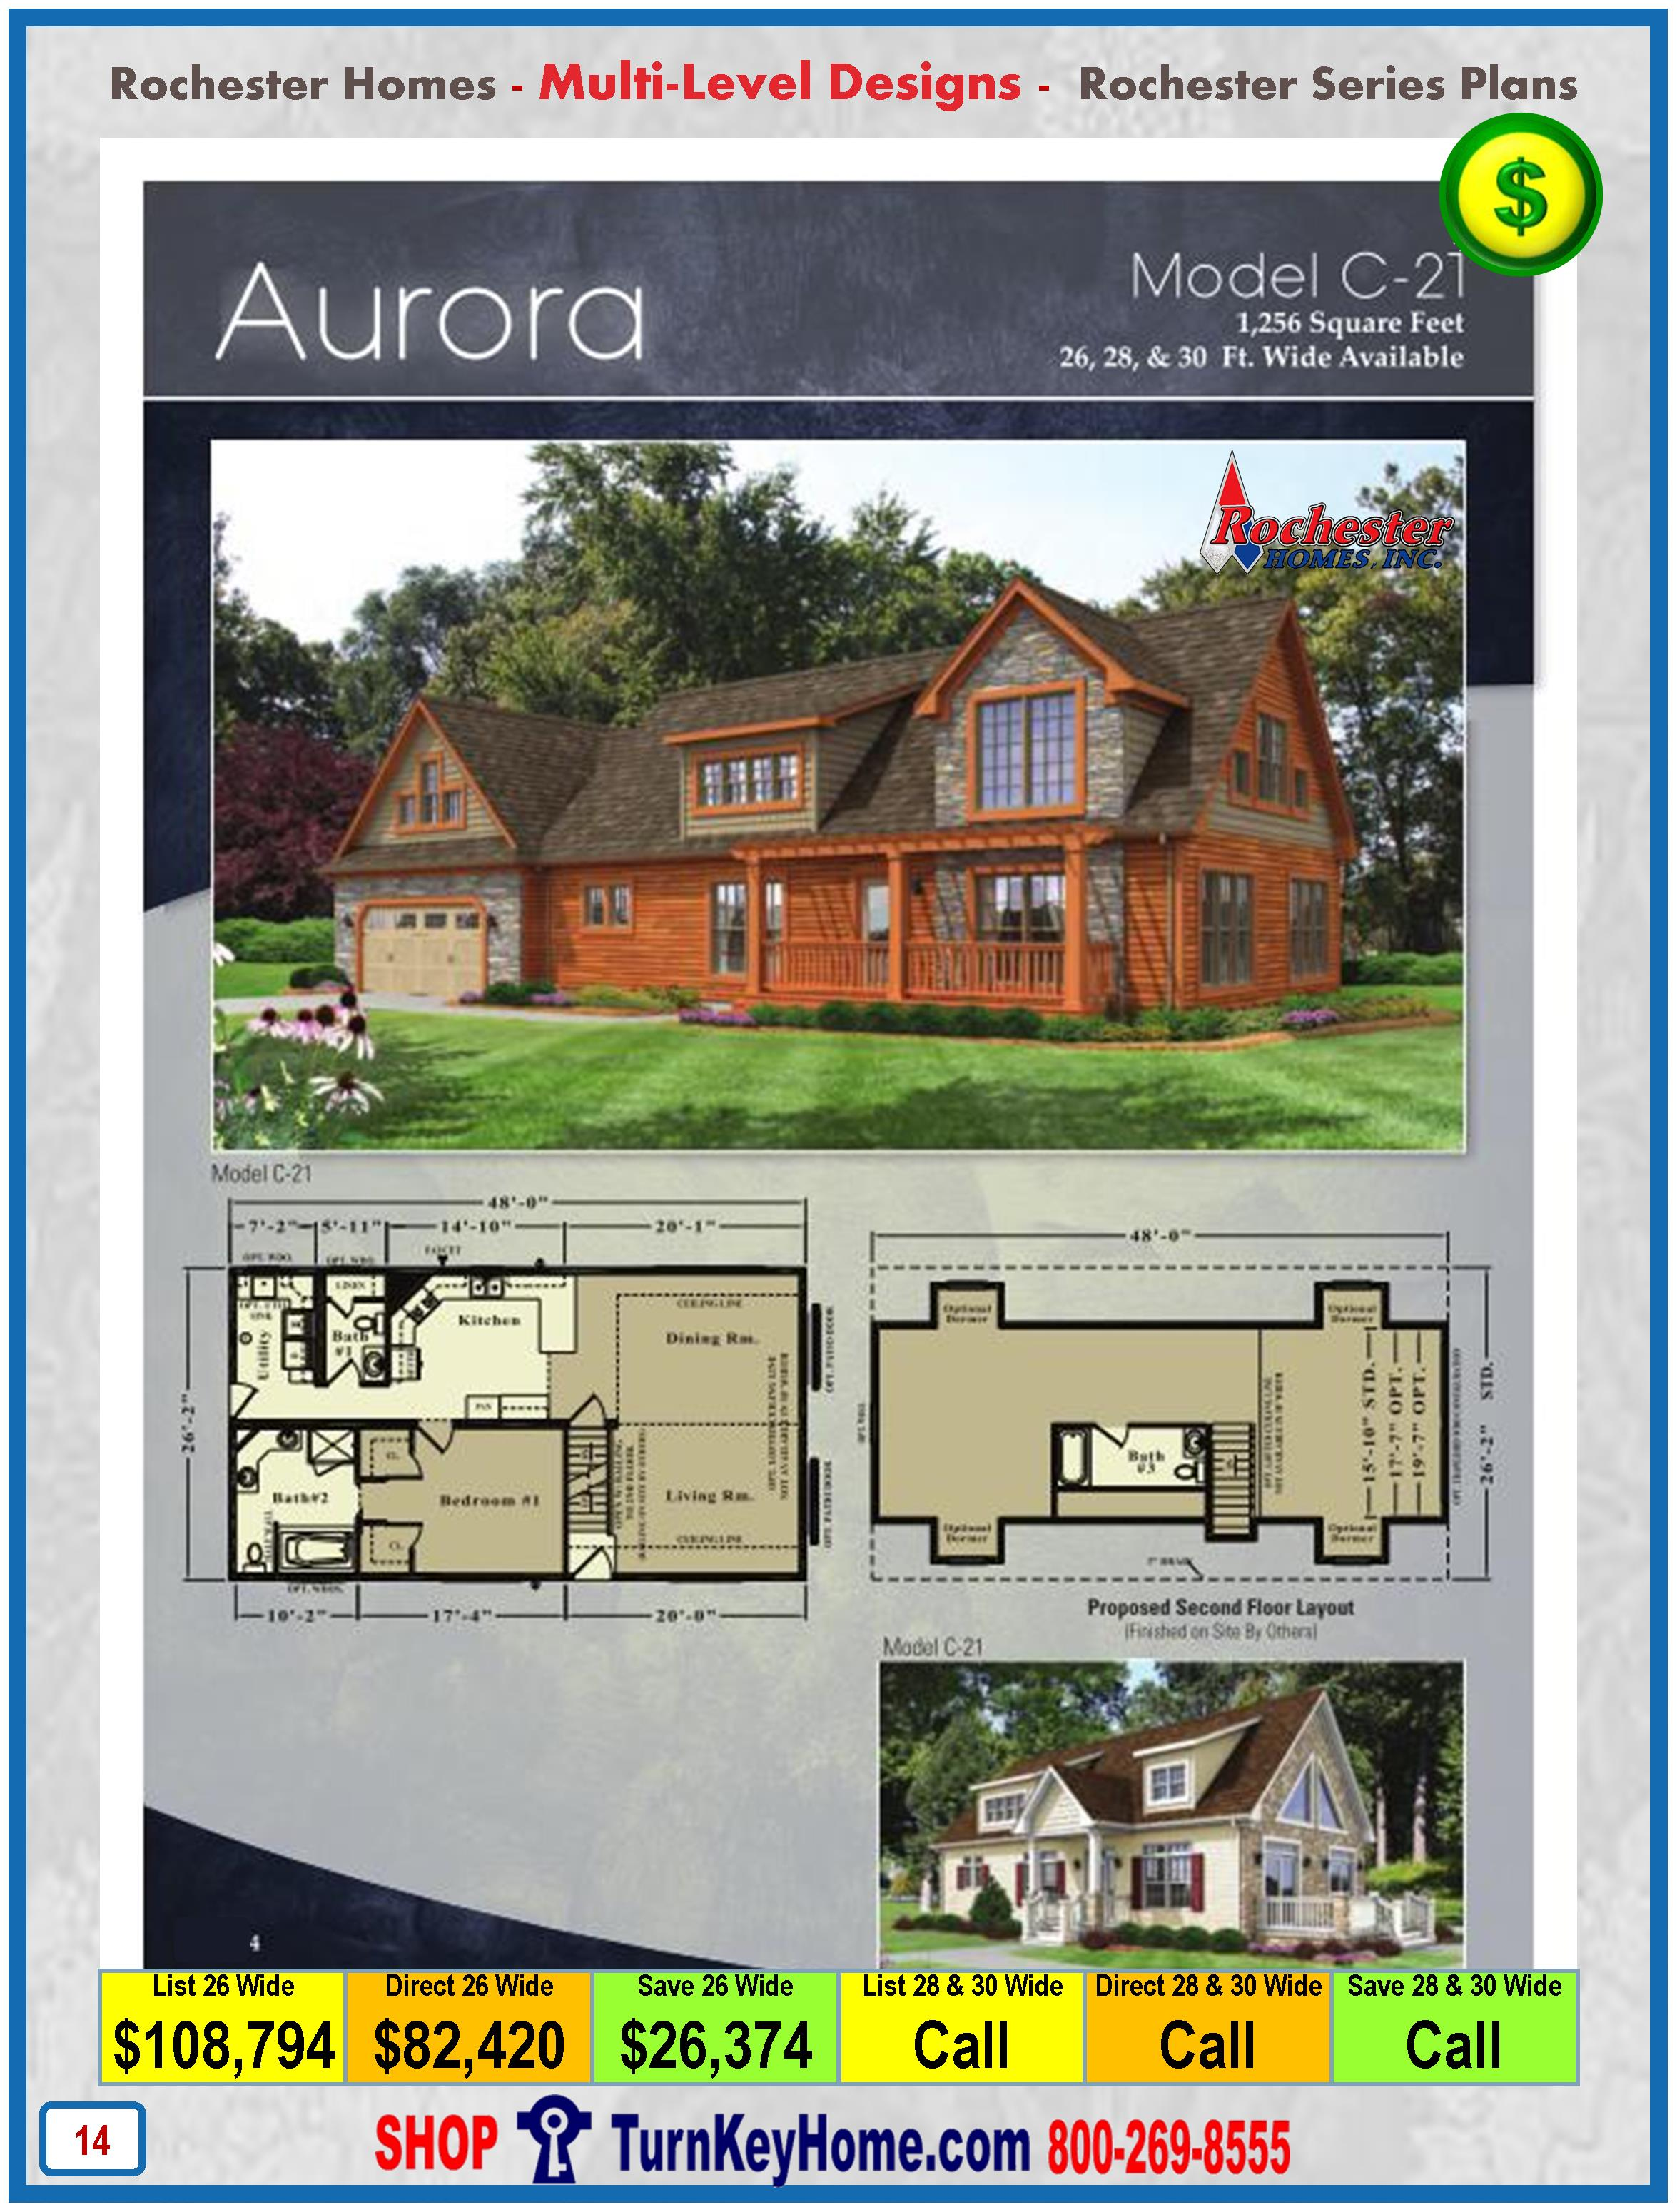 aurora rochester modular home cape cod multi level plan price home rochester homes cape cod aurora c21